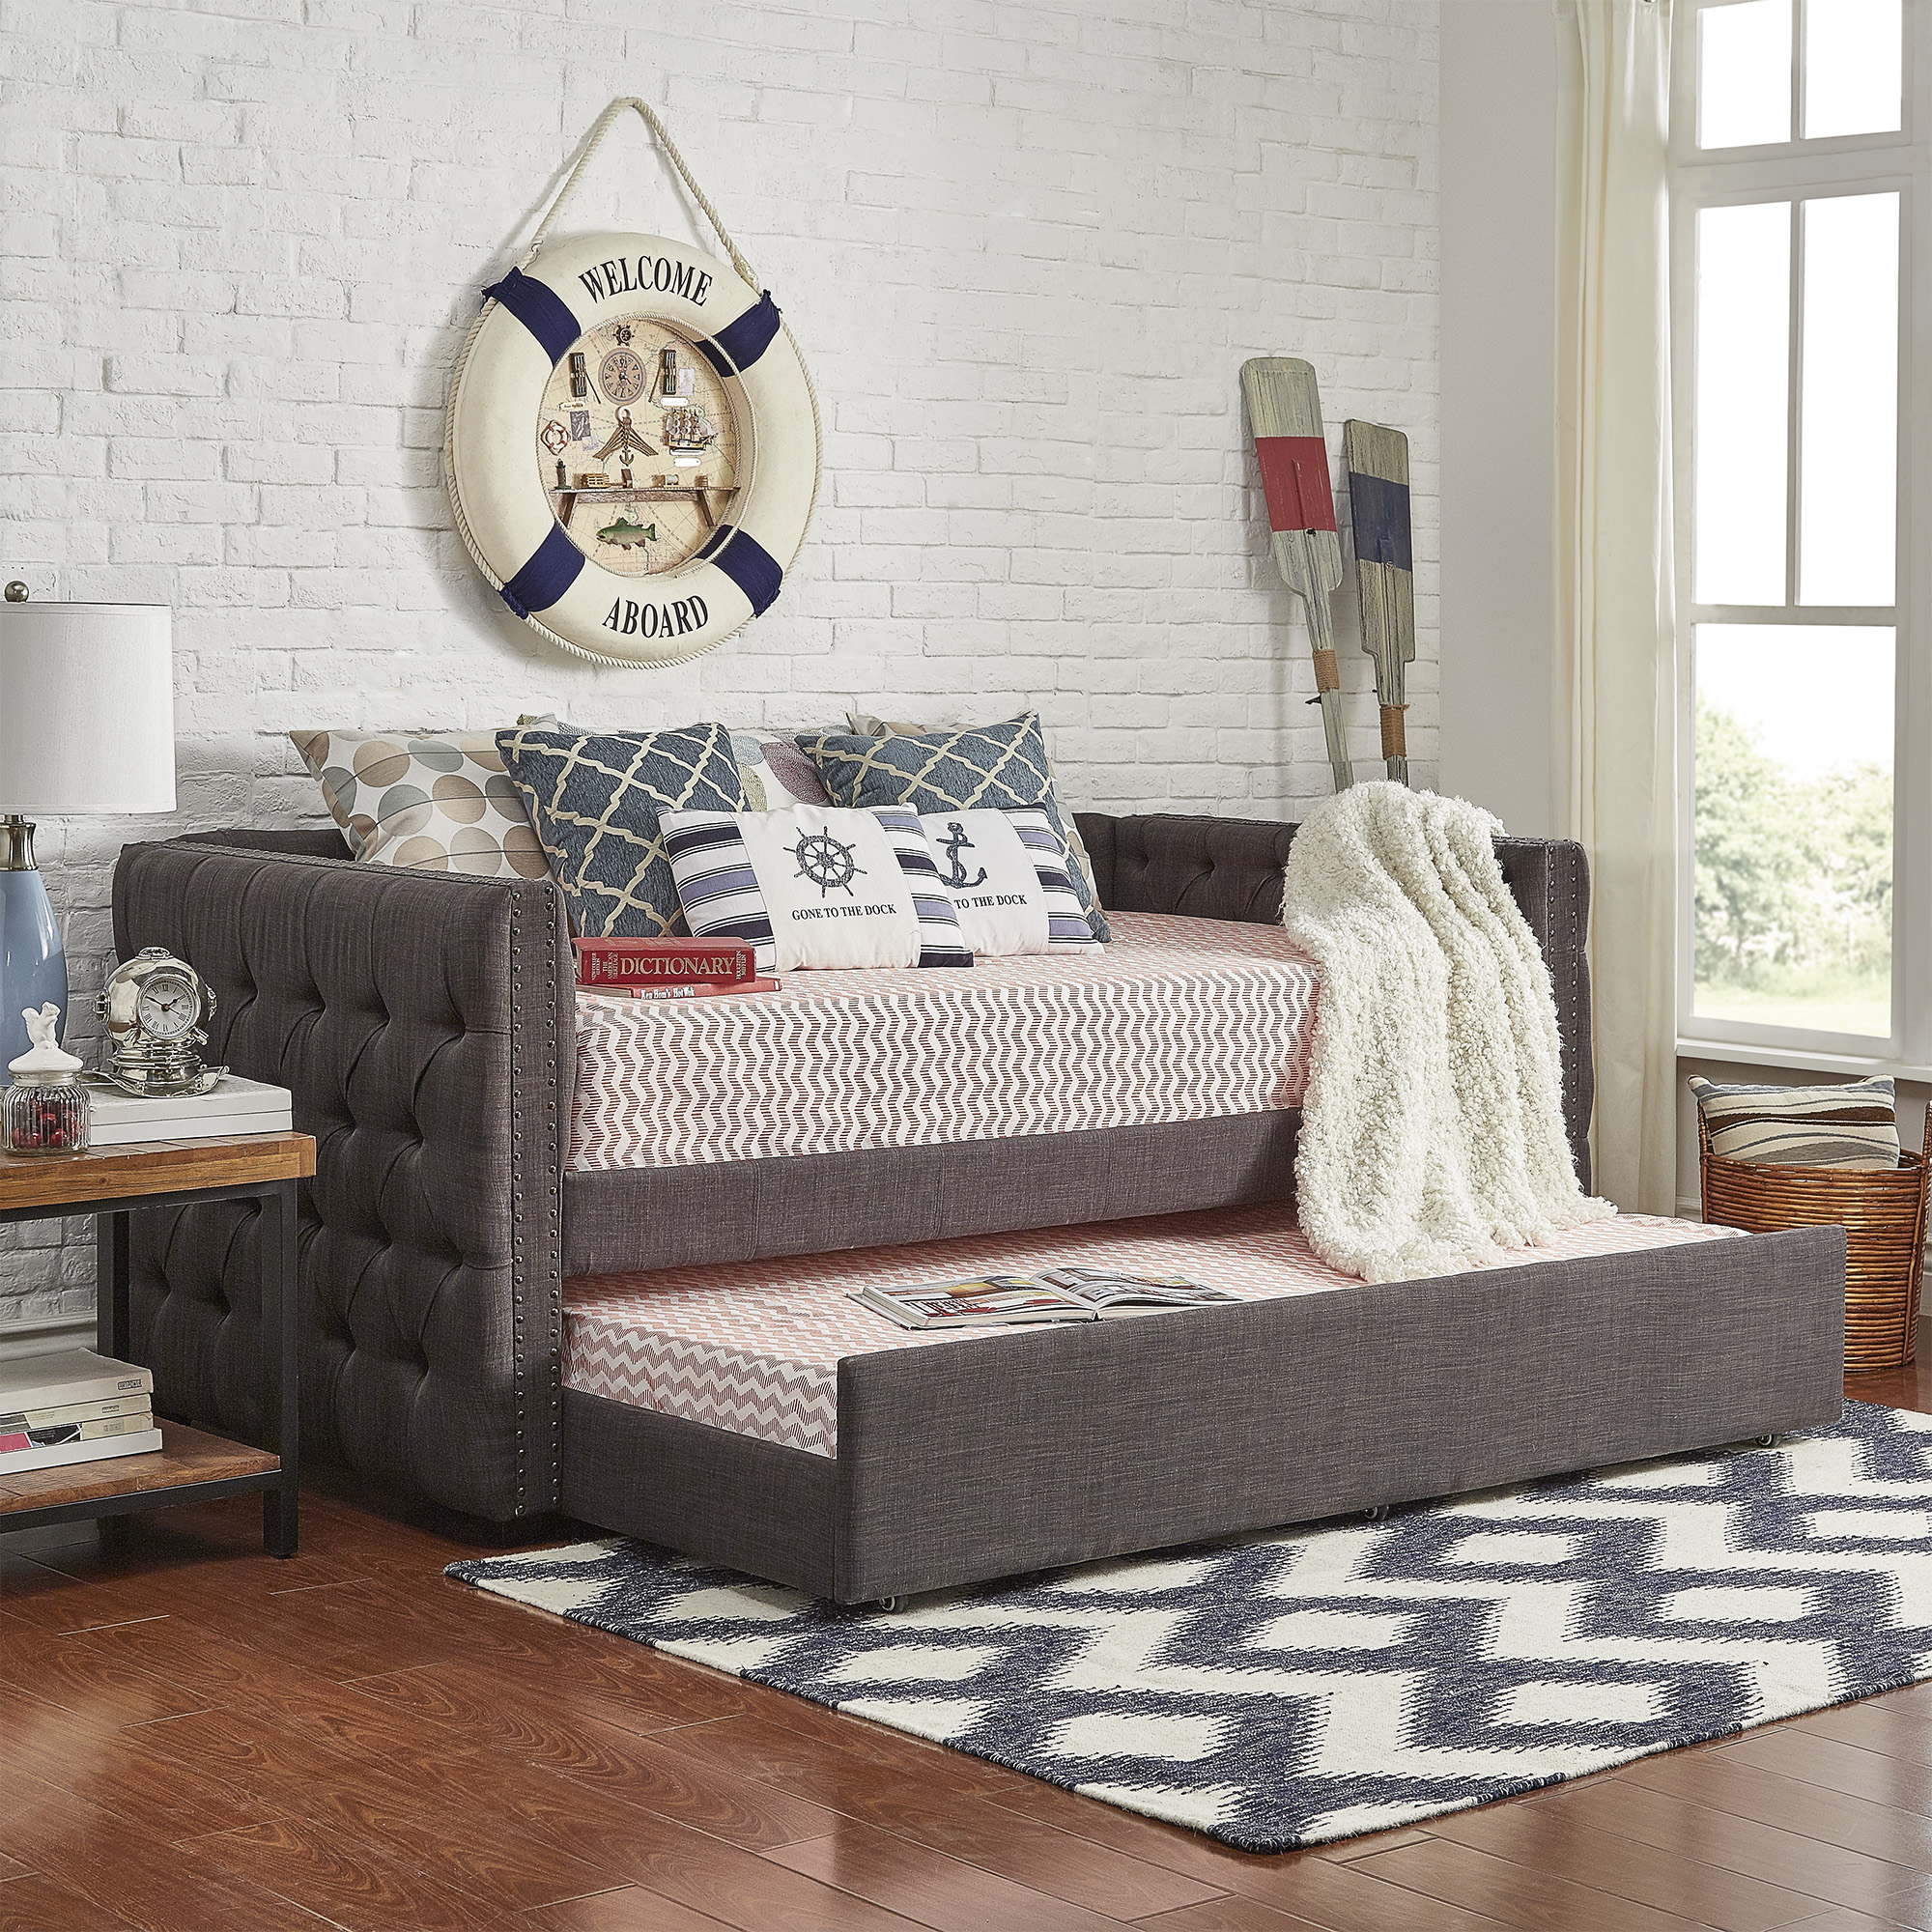 Weston Home Kenswick Tufted Upholstered Twin Daybed with Trundle, Multiple Colors